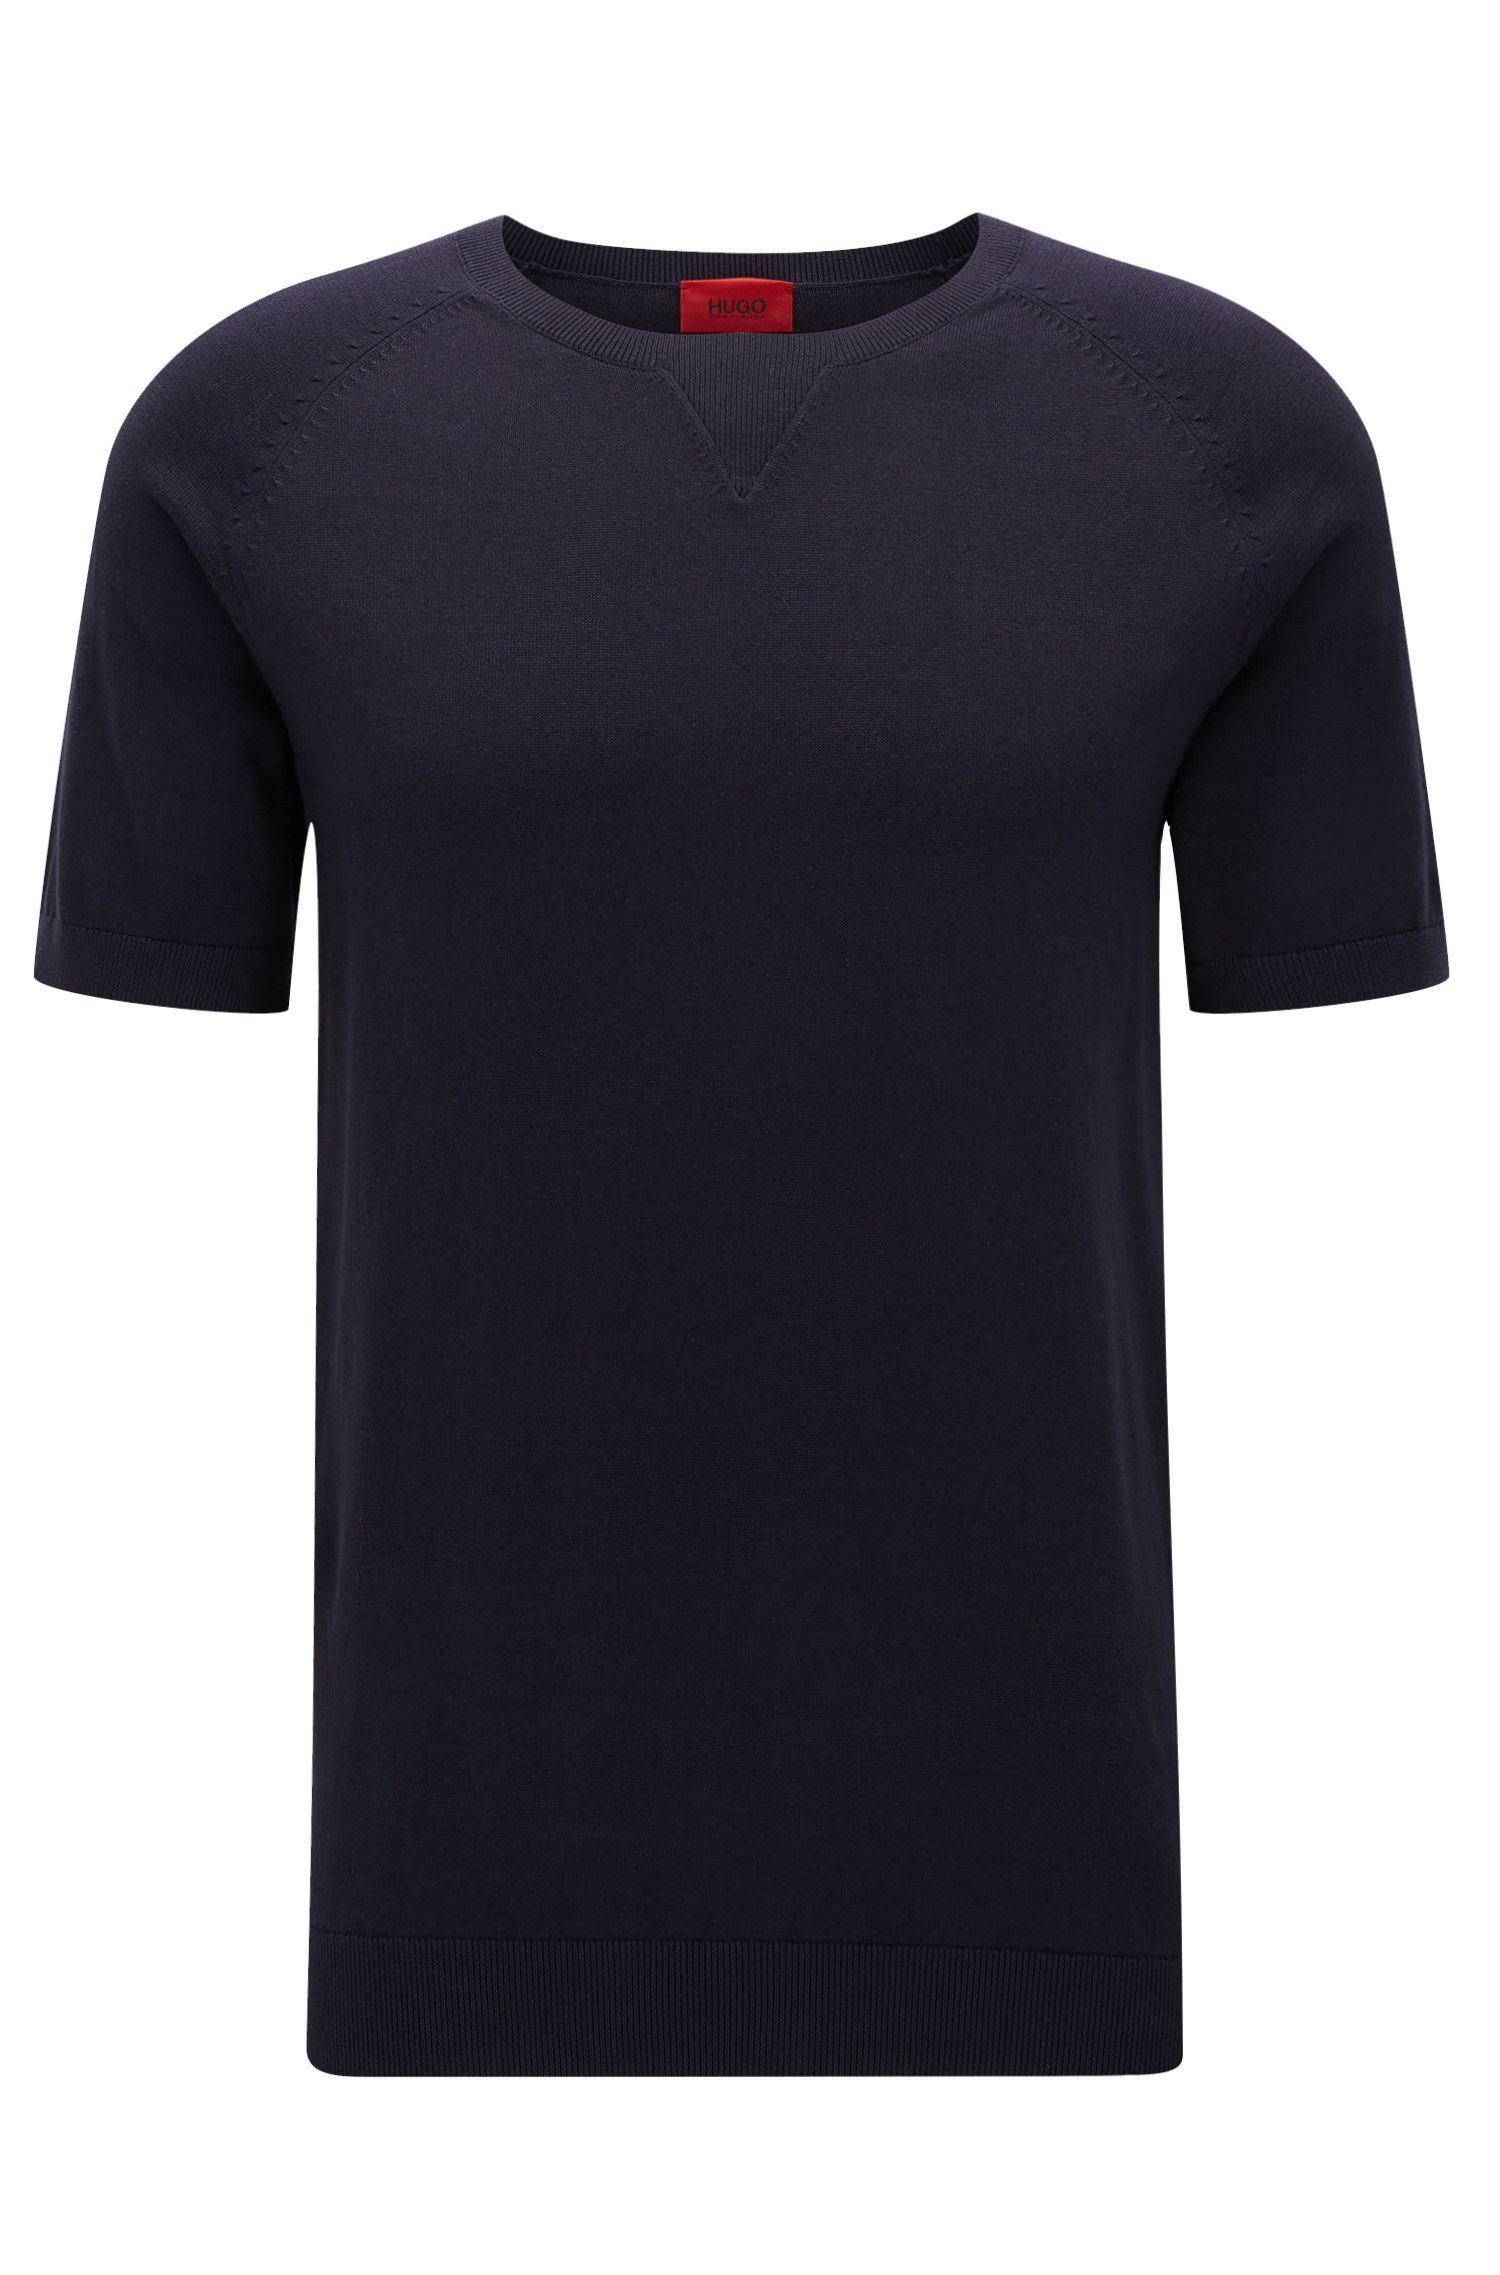 Oversized-fit cotton T-shirt with neckline detail